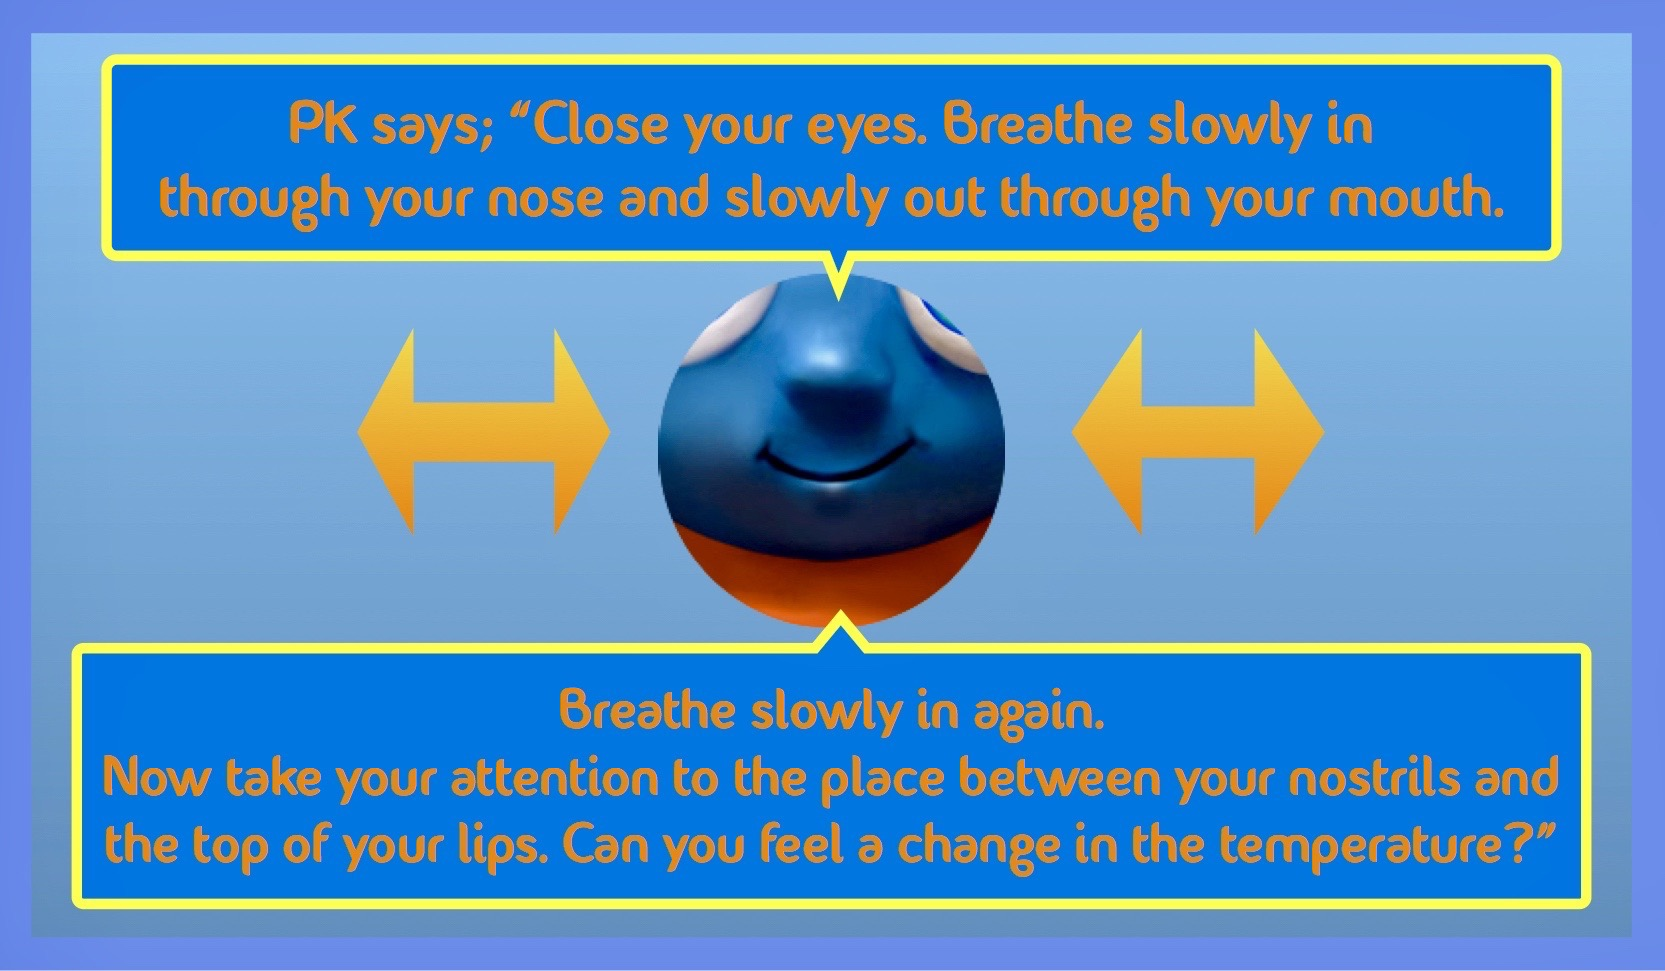 Your nose and the top of your lip